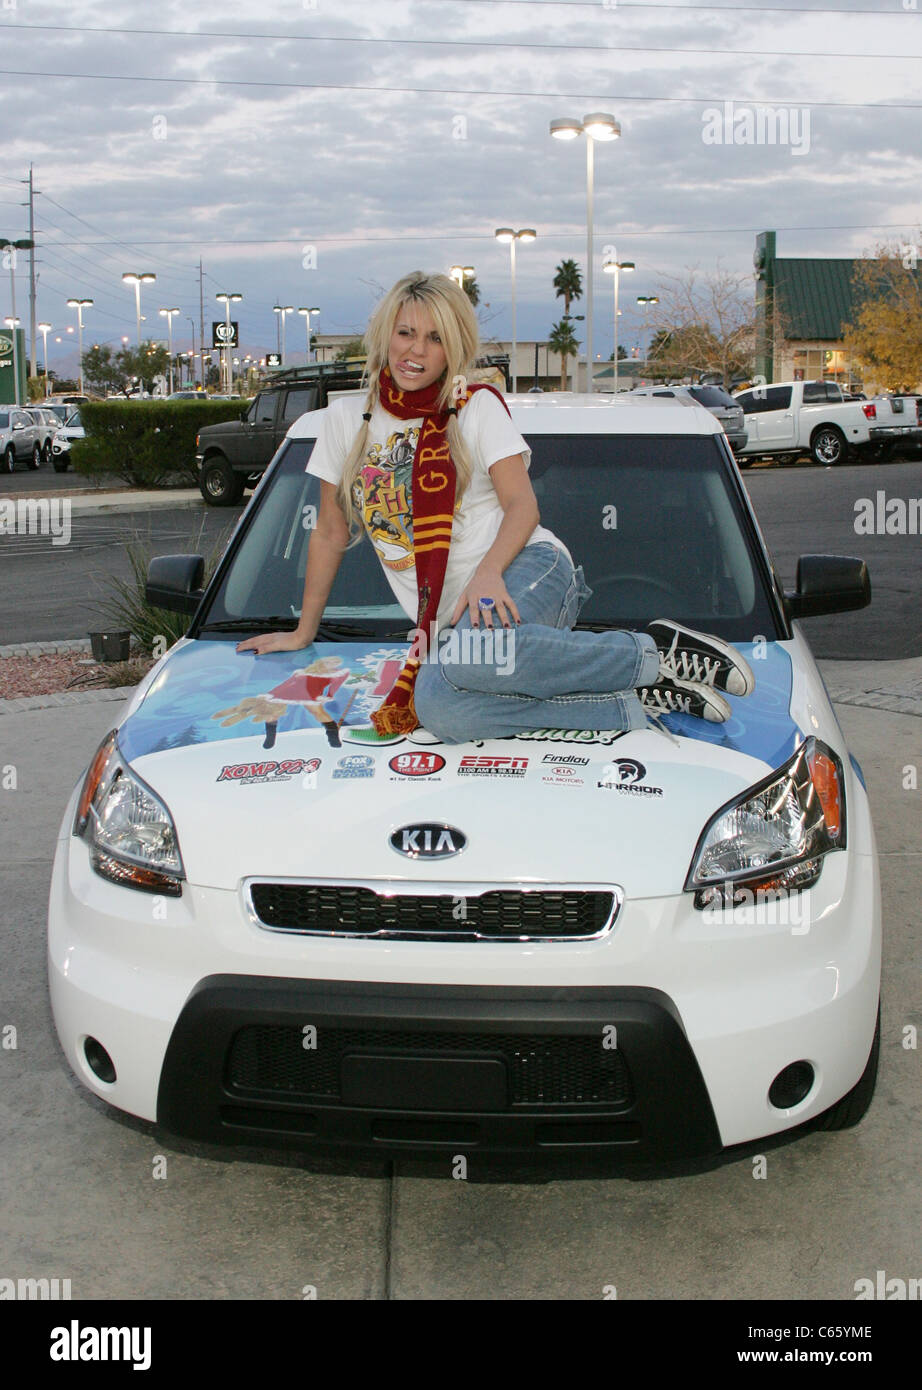 Perfect Angel Porrino At A Public Appearance For Angel Porrino At The Holly Jolly  Toy Drive, Findlay Kia, Las Vegas, NV December 16, 2010.